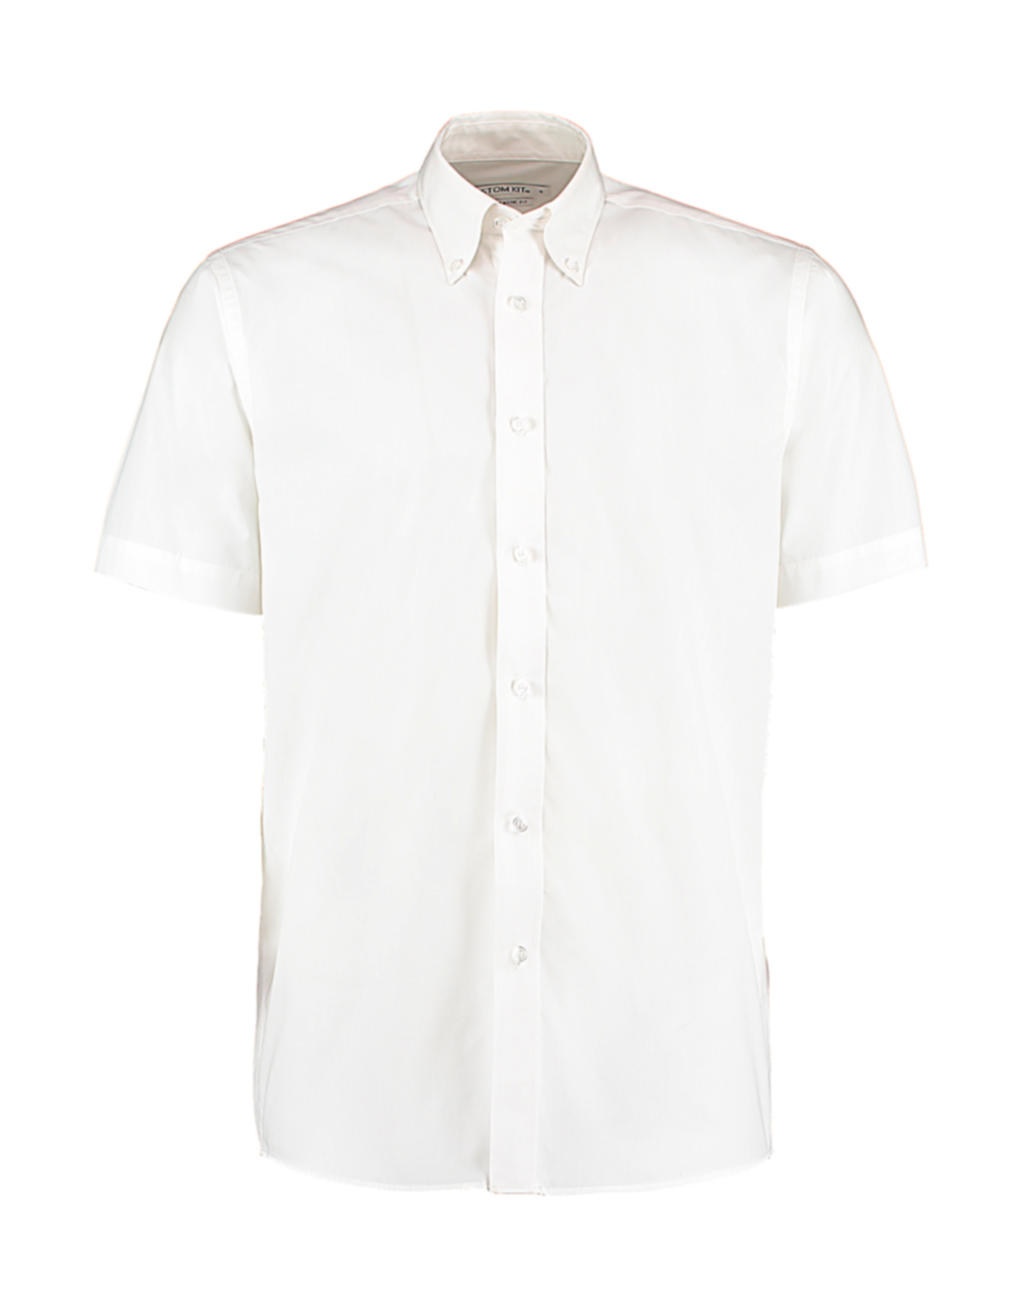 Classic Fit Workforce Shirt